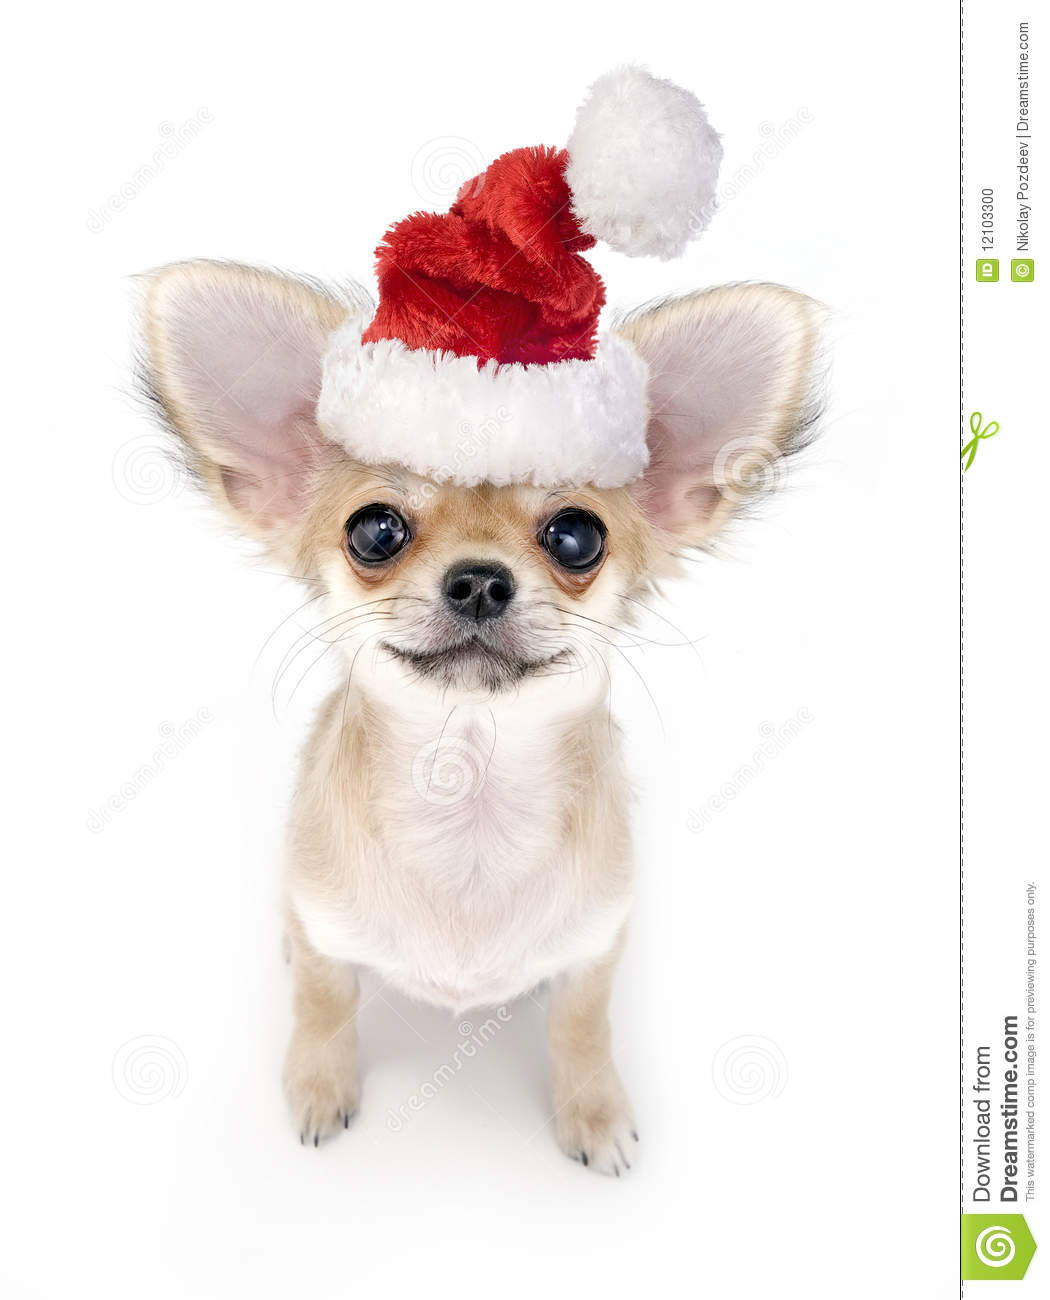 2cb8fbfc4ca8b Cute Chihuahua Puppy With Santa Hat Stock Photo - Image of bright ...